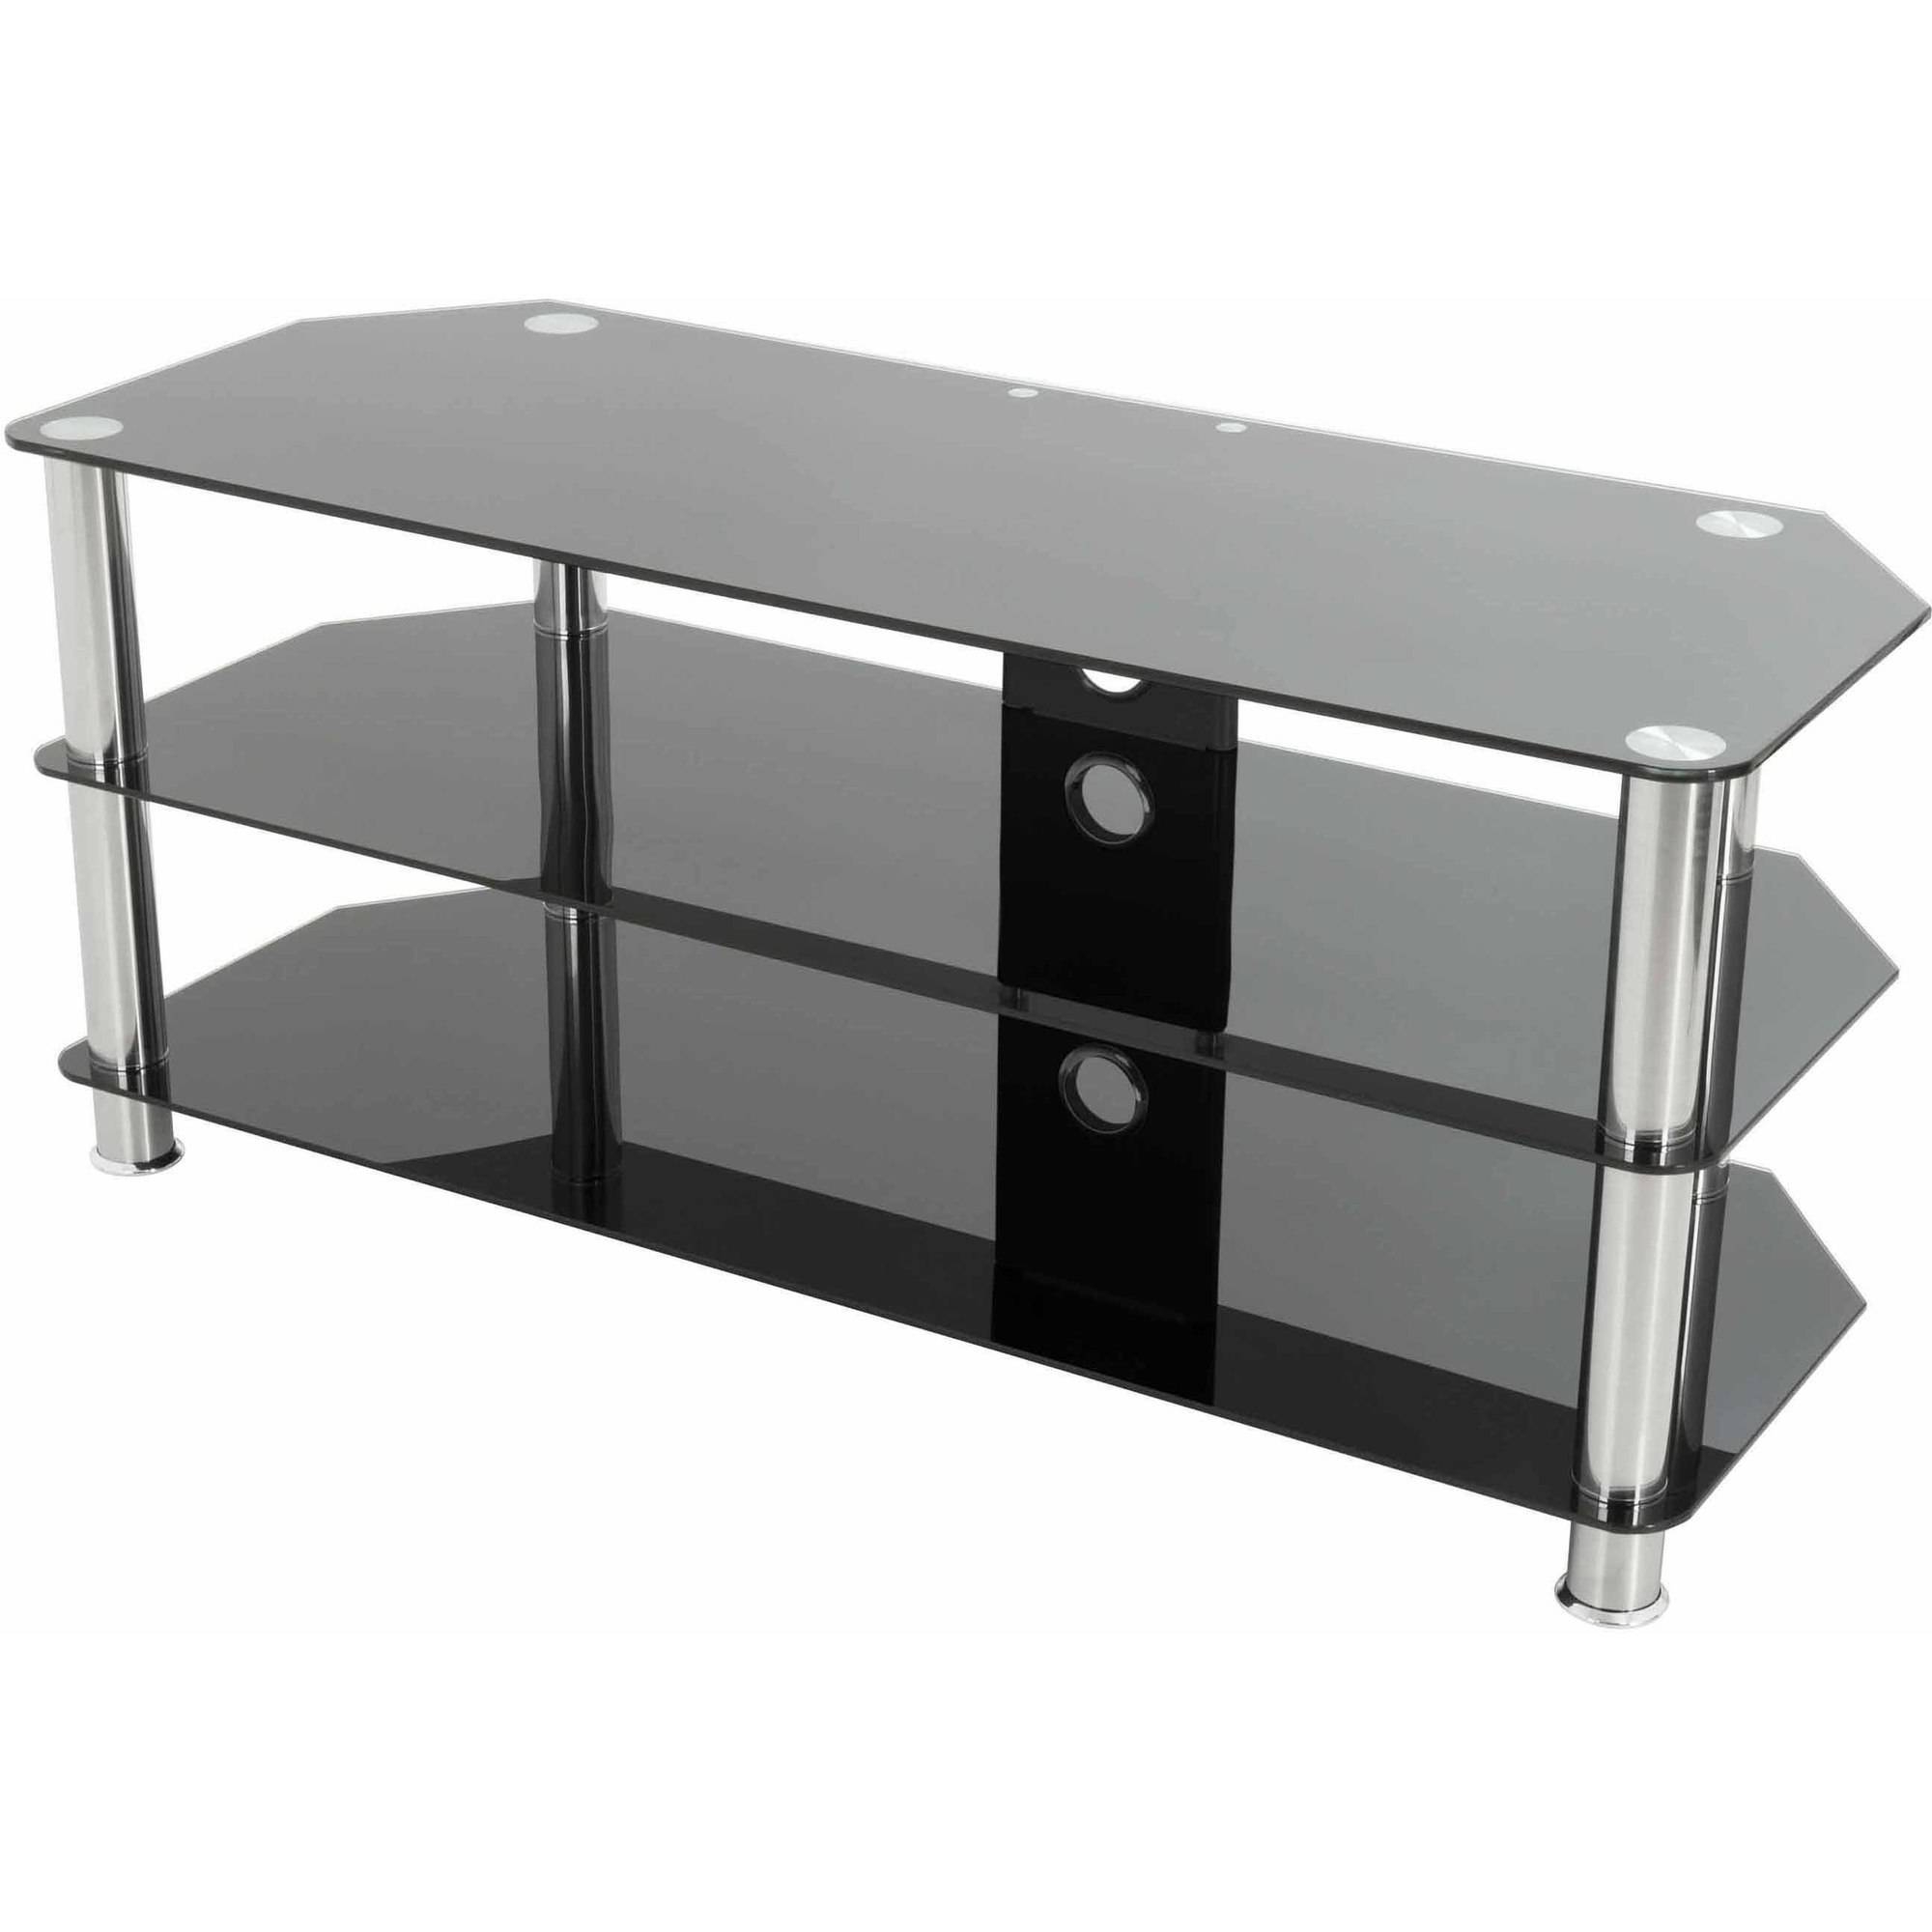 Glass Tv Stands Inside Well Known Avf Classic Corner Glass Tv Stand With Cable Management For Up To 55 (Gallery 19 of 20)